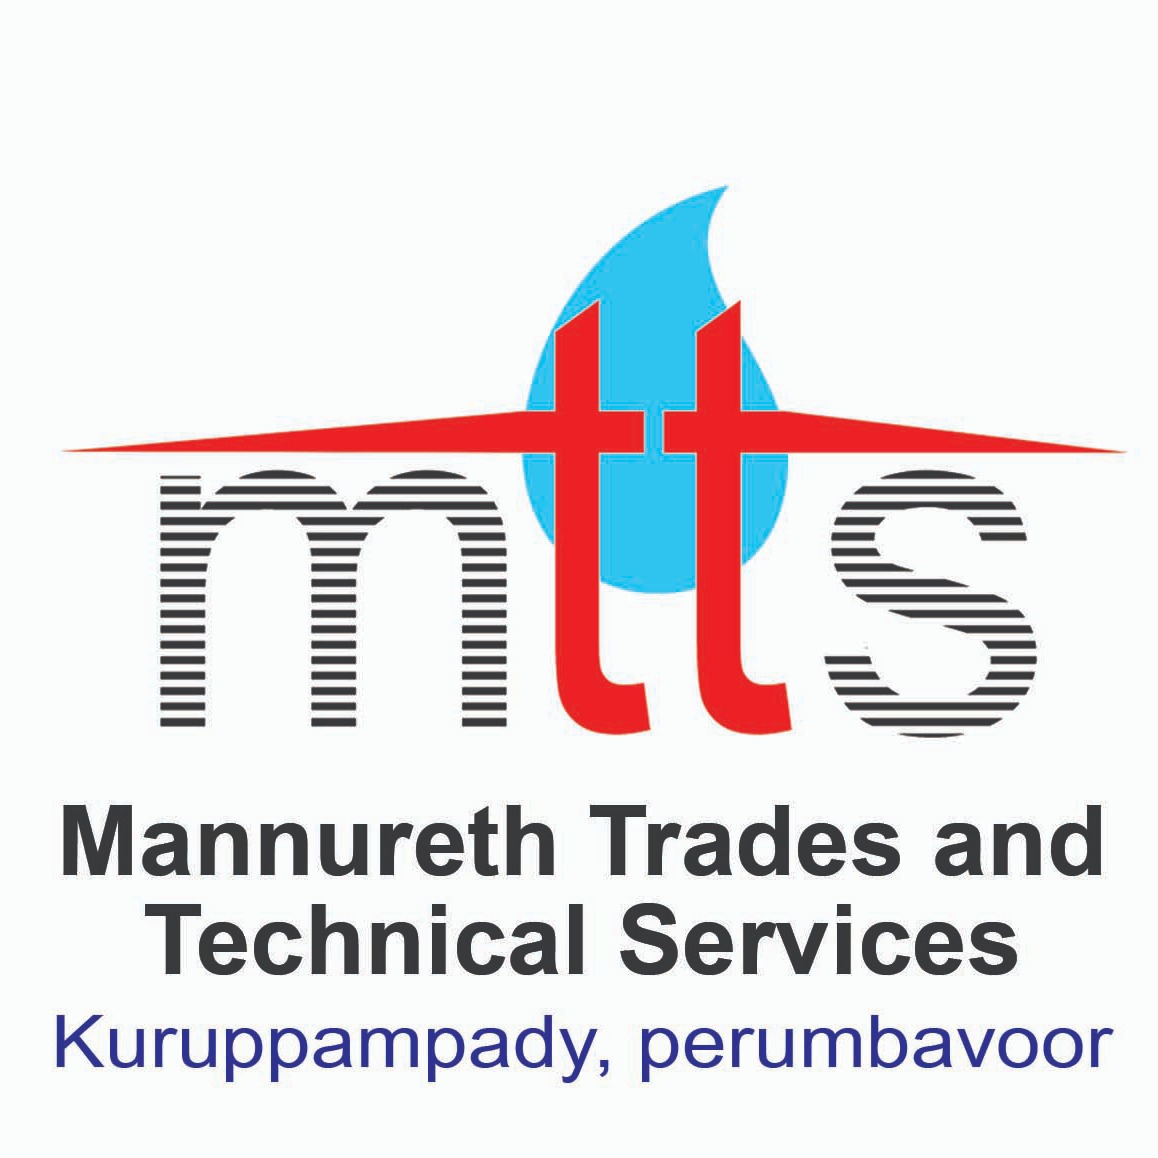 Mannureth Trades and Technical services, WATER PURIFIER SALES & SERVICE,  service in Perumbavoor, Ernakulam